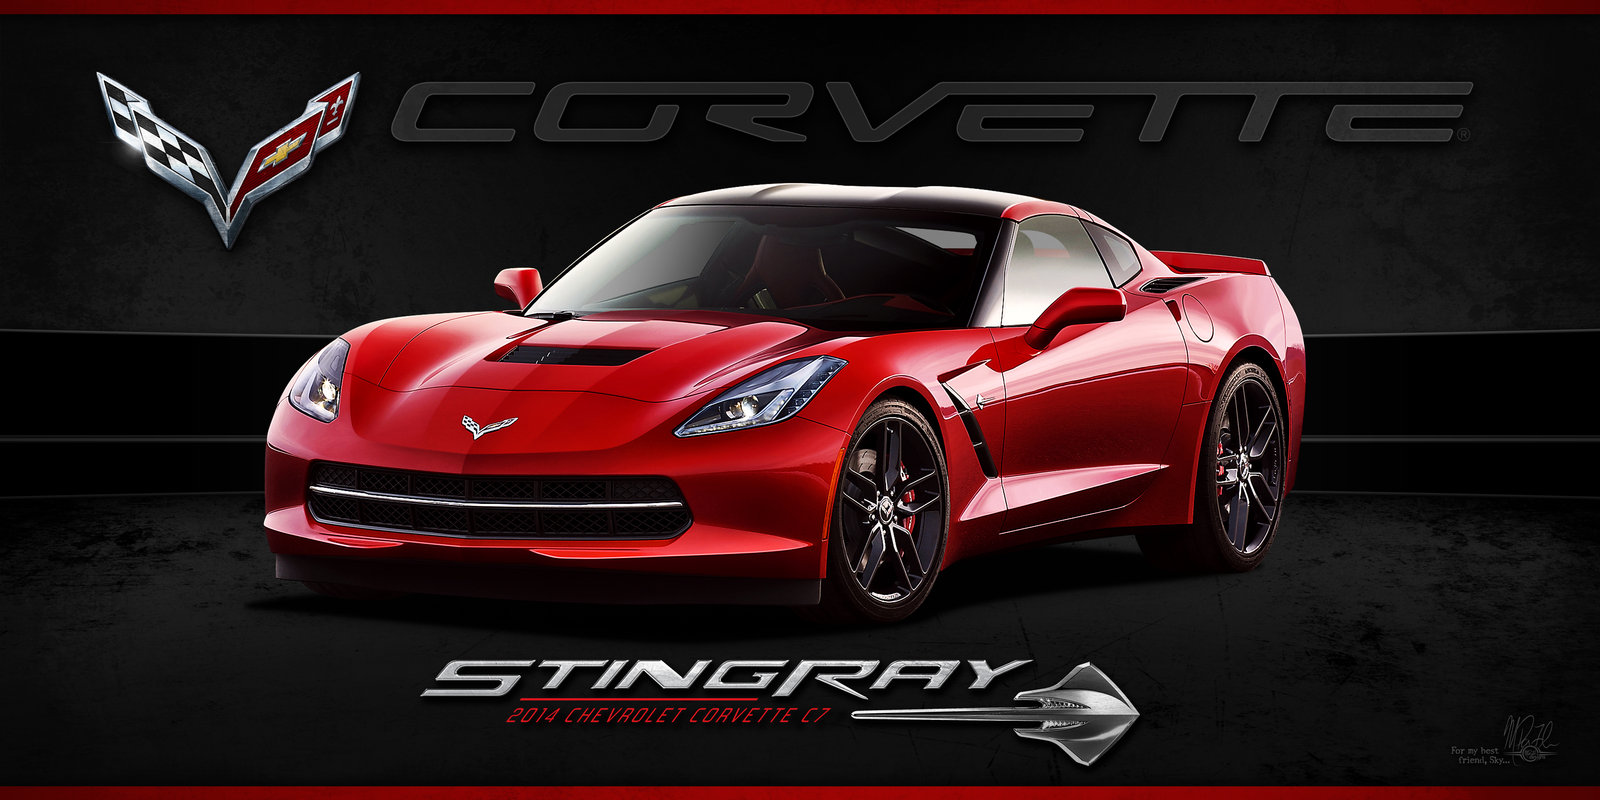 c7 corvette wallpaper wallpapersafari